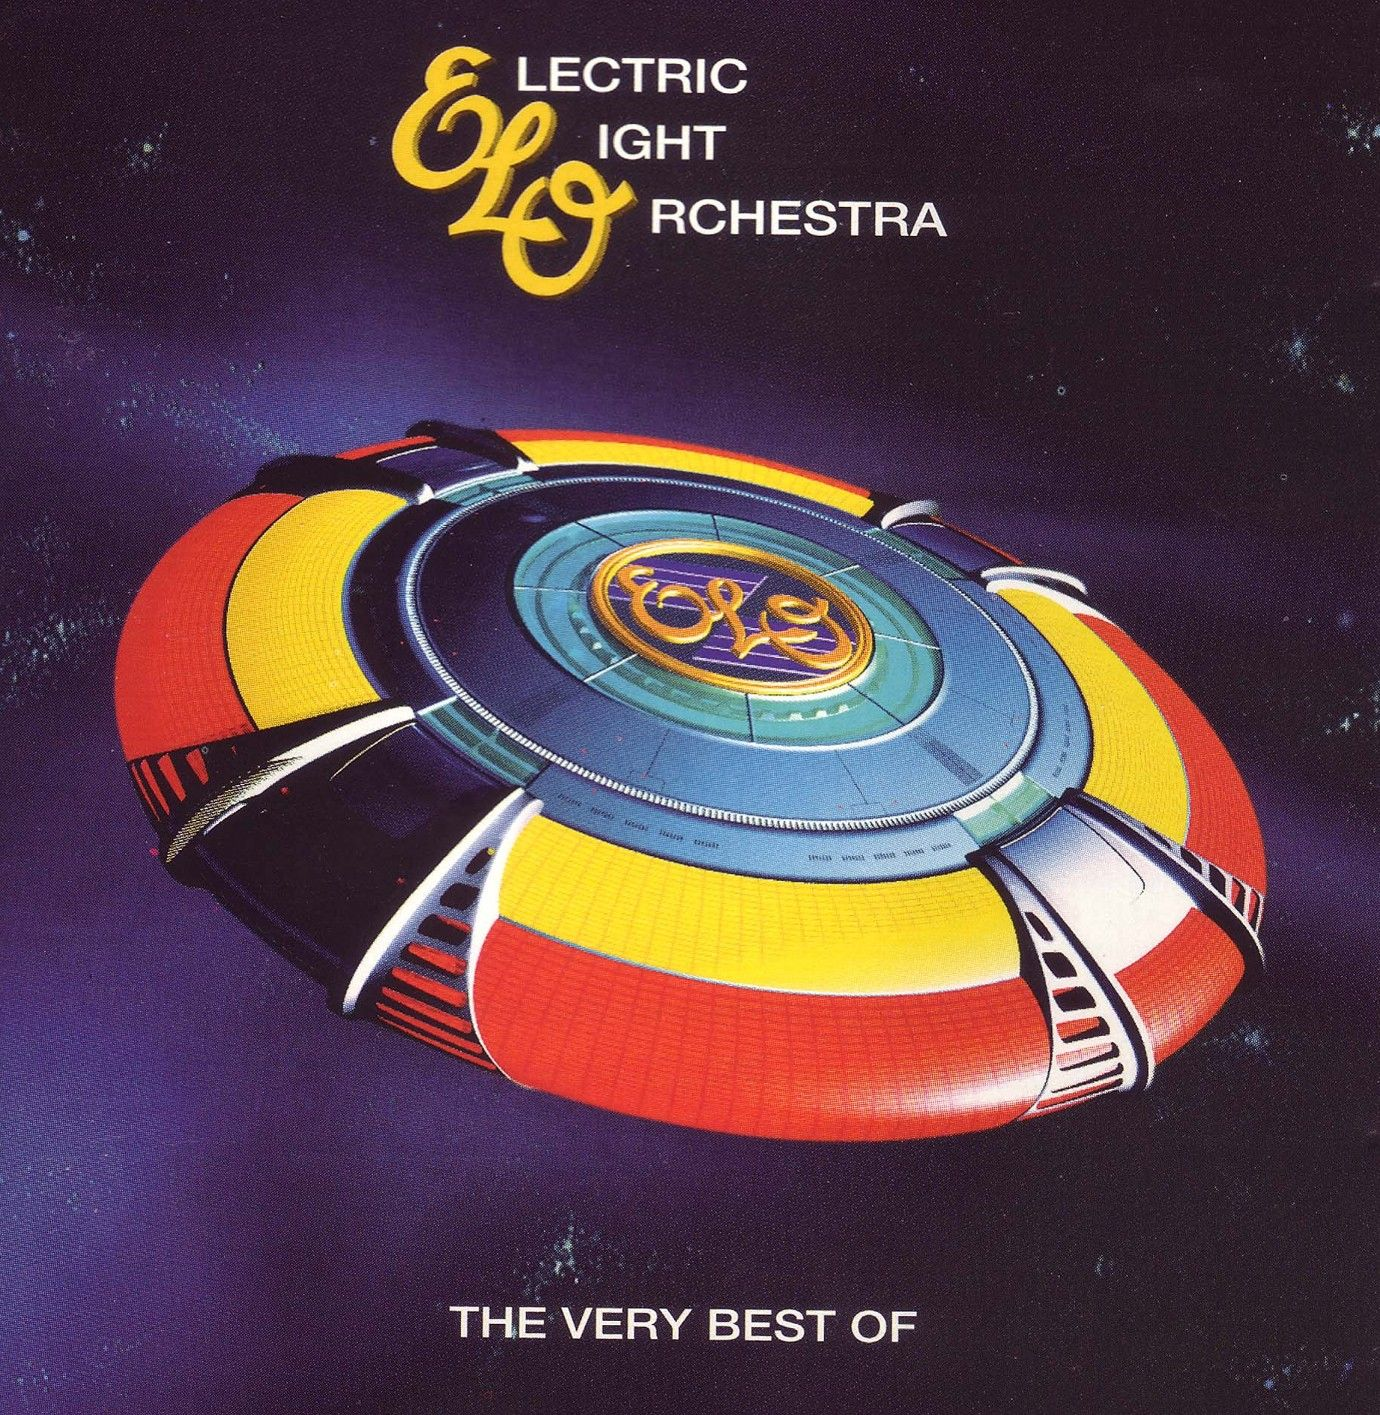 Electric Light Orchestra - The Very Best Of - All Over The World album cover